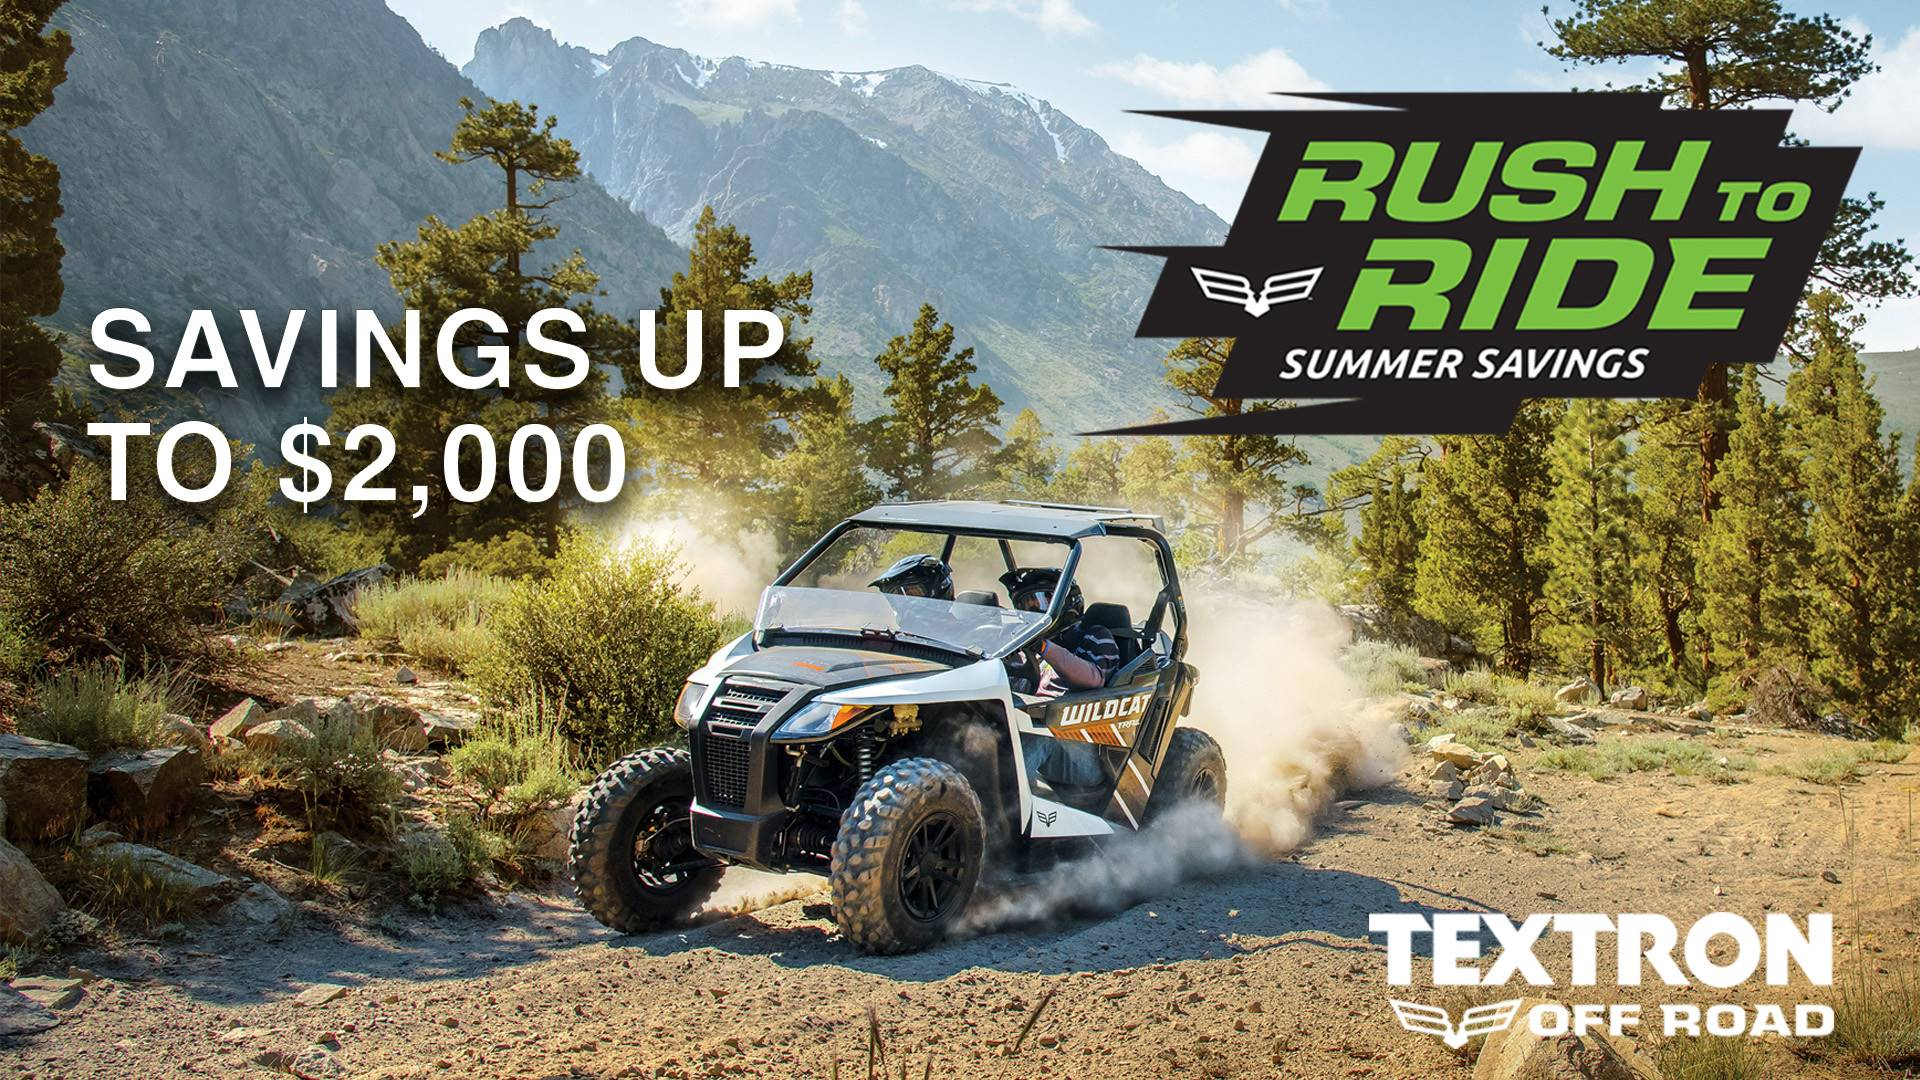 Textron Rush To Ride Sales Event